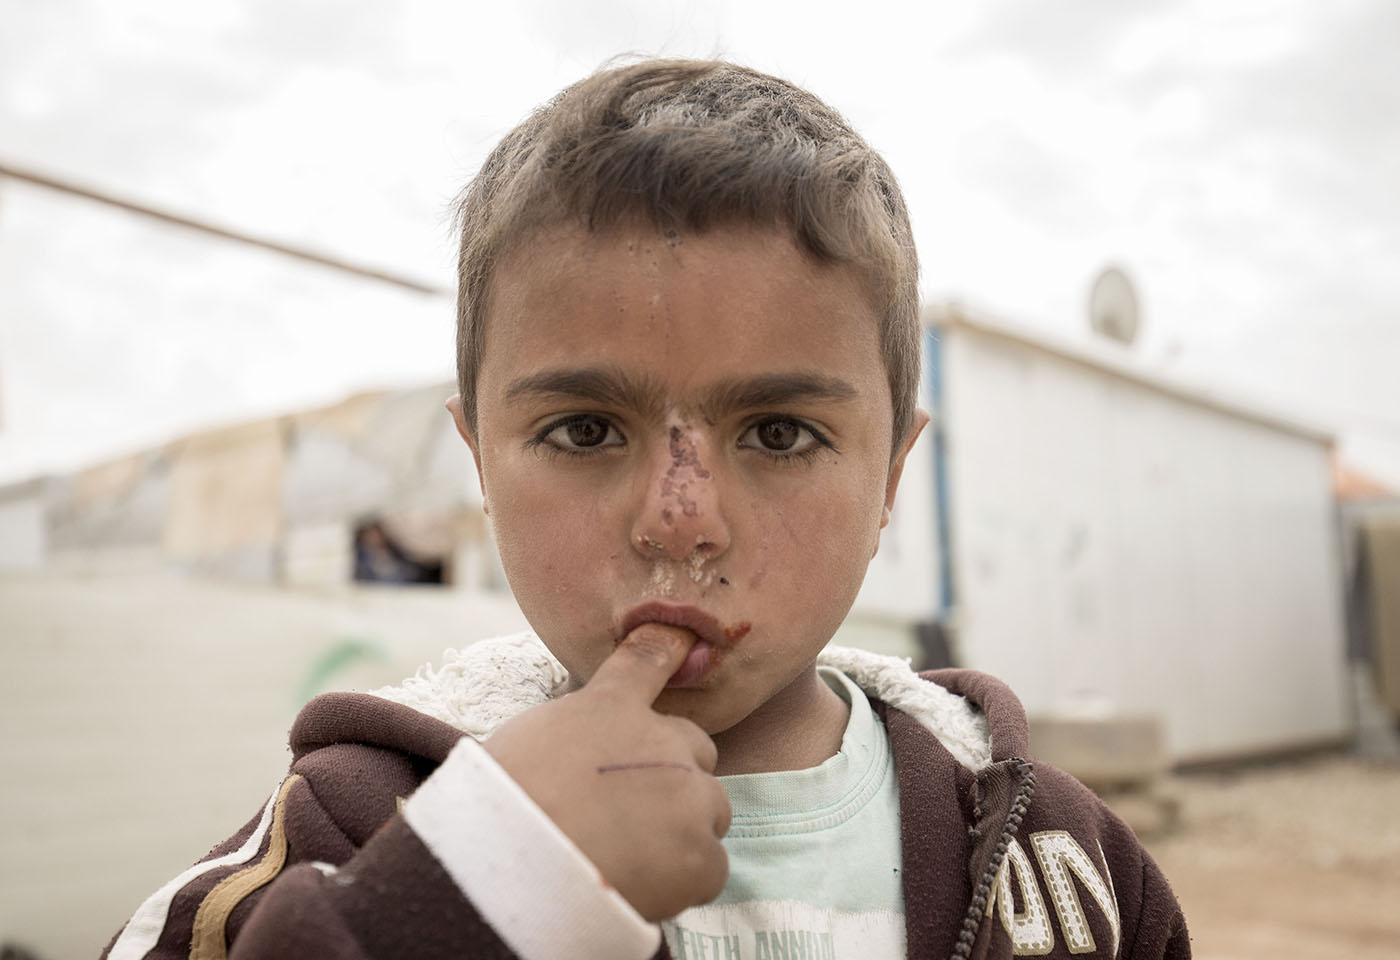 Portrait image of refugee kid